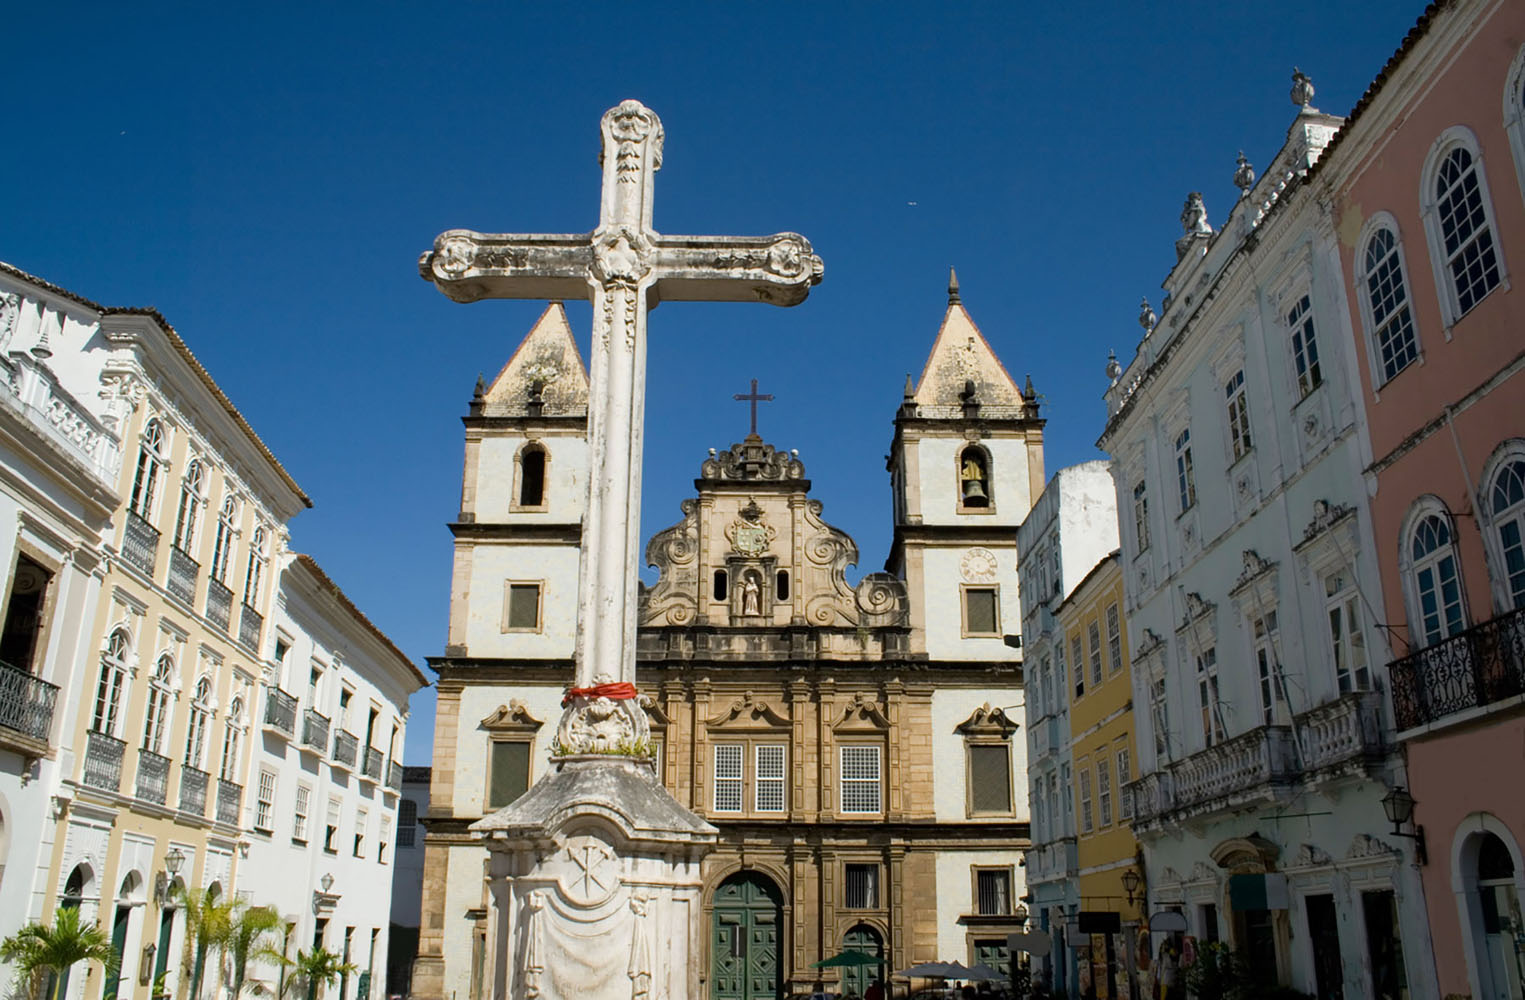 The modest exterior of São Francisco Church and Convent in Salvador De Bahia